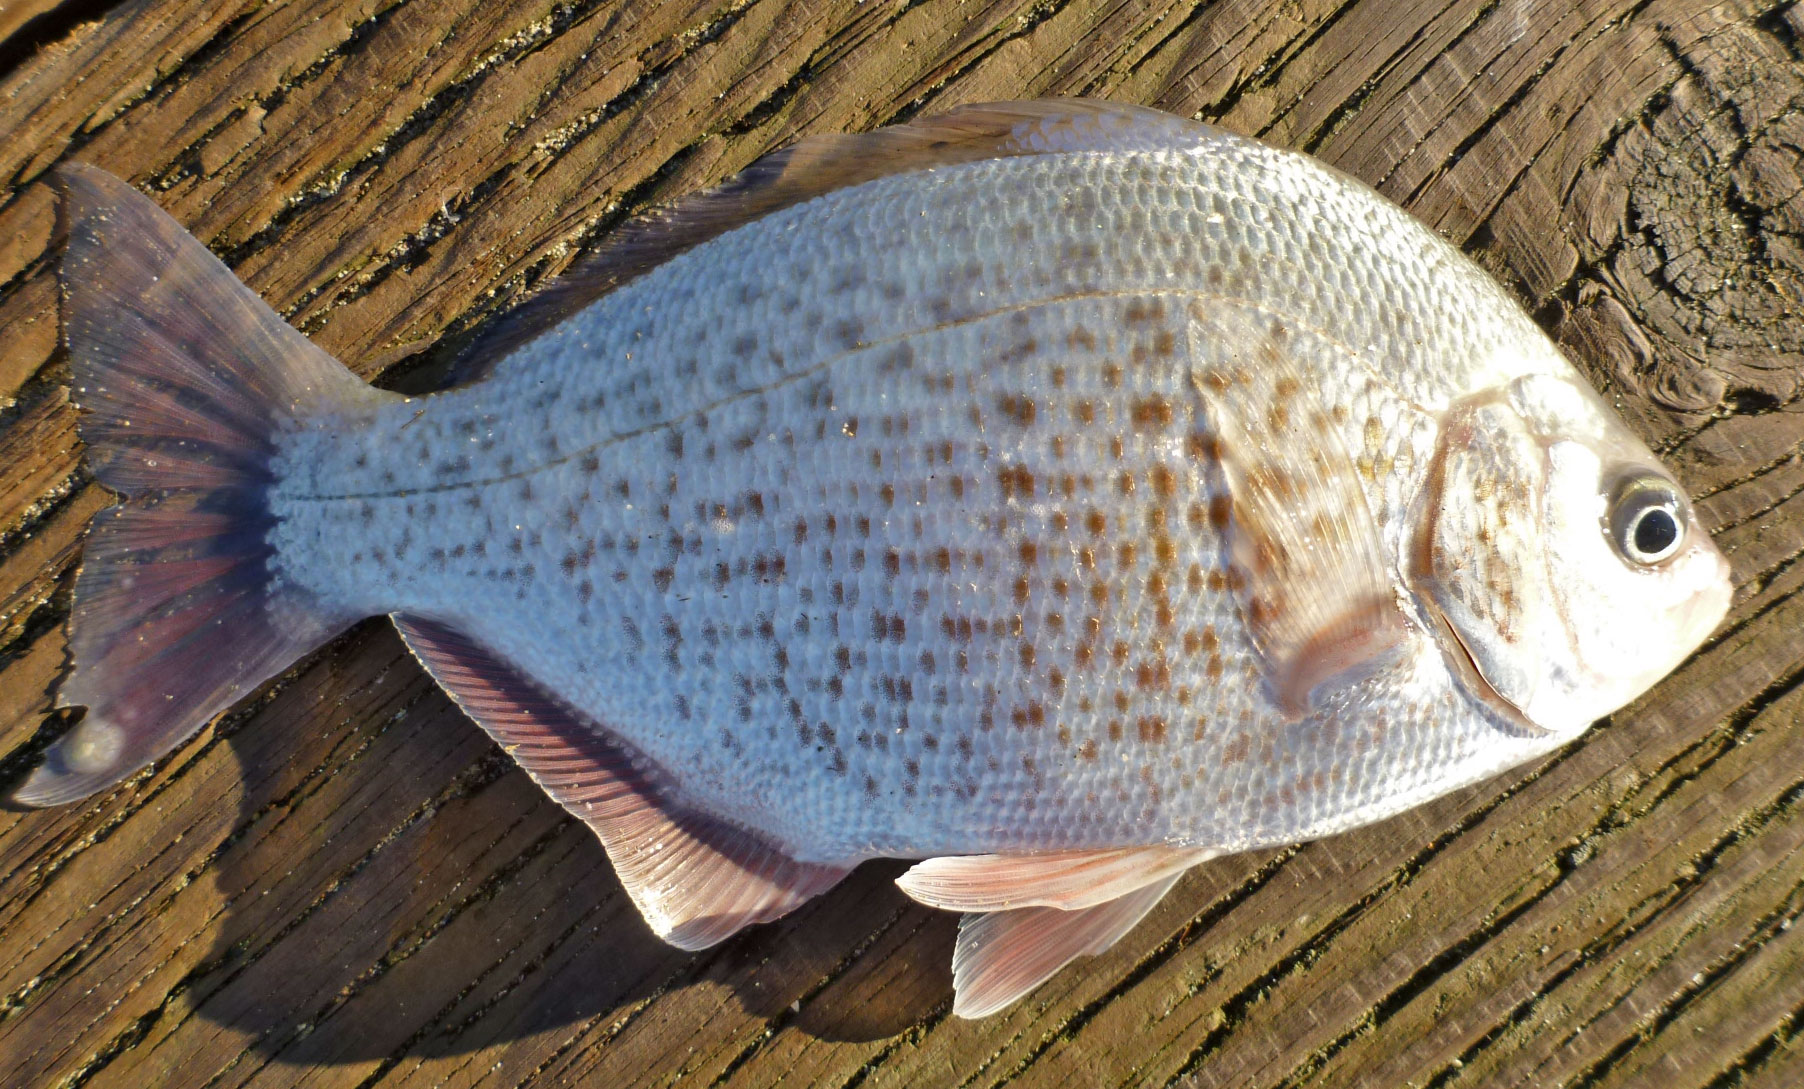 Adult female calico surfperch, Amphistichus koelzi